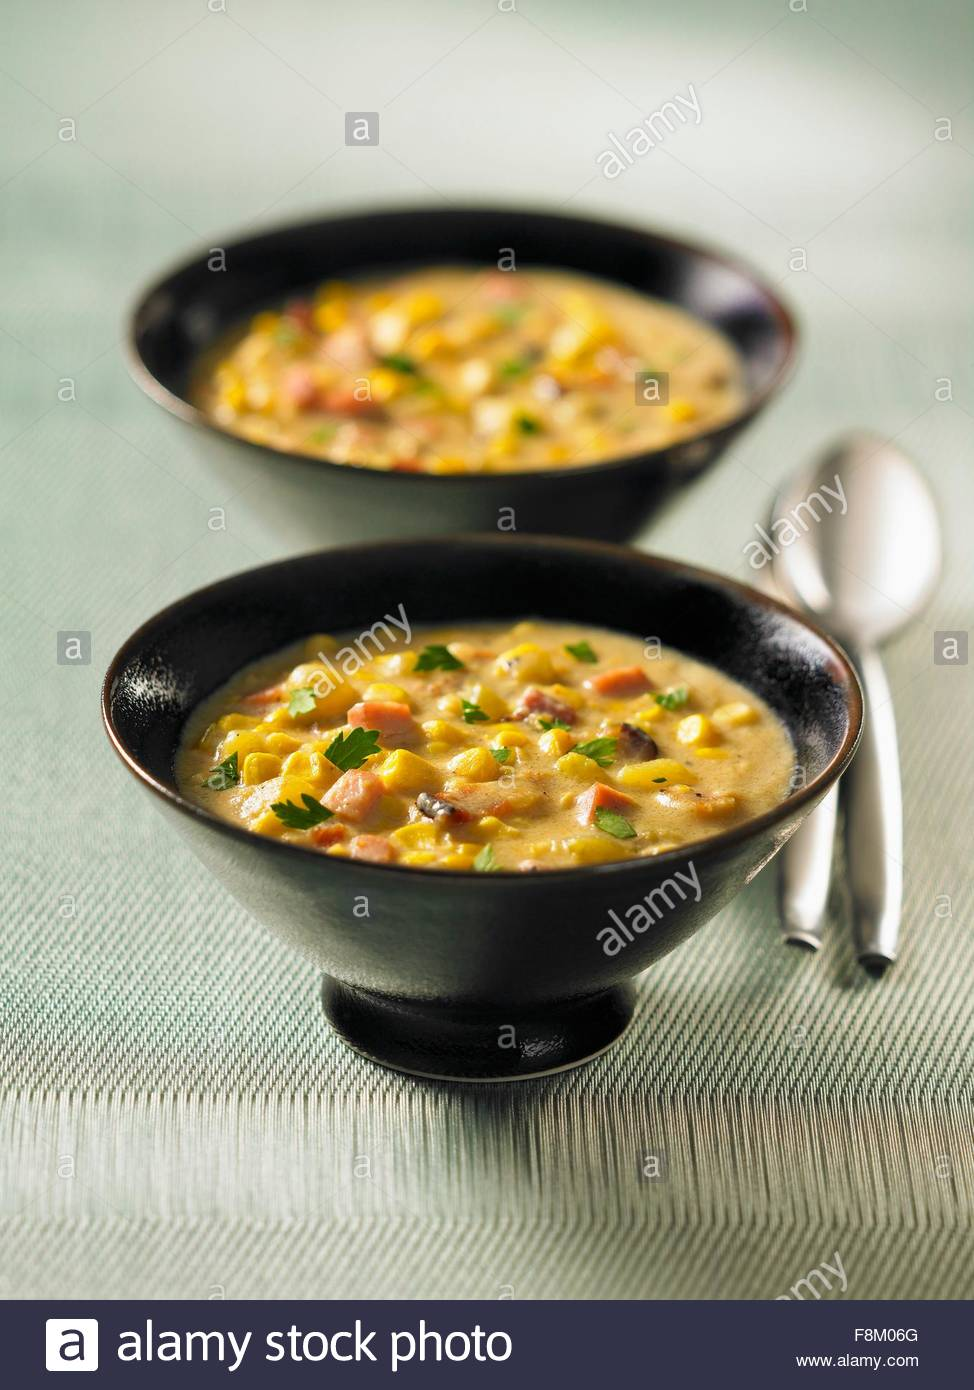 Two bowls of corn chowder - Stock Image